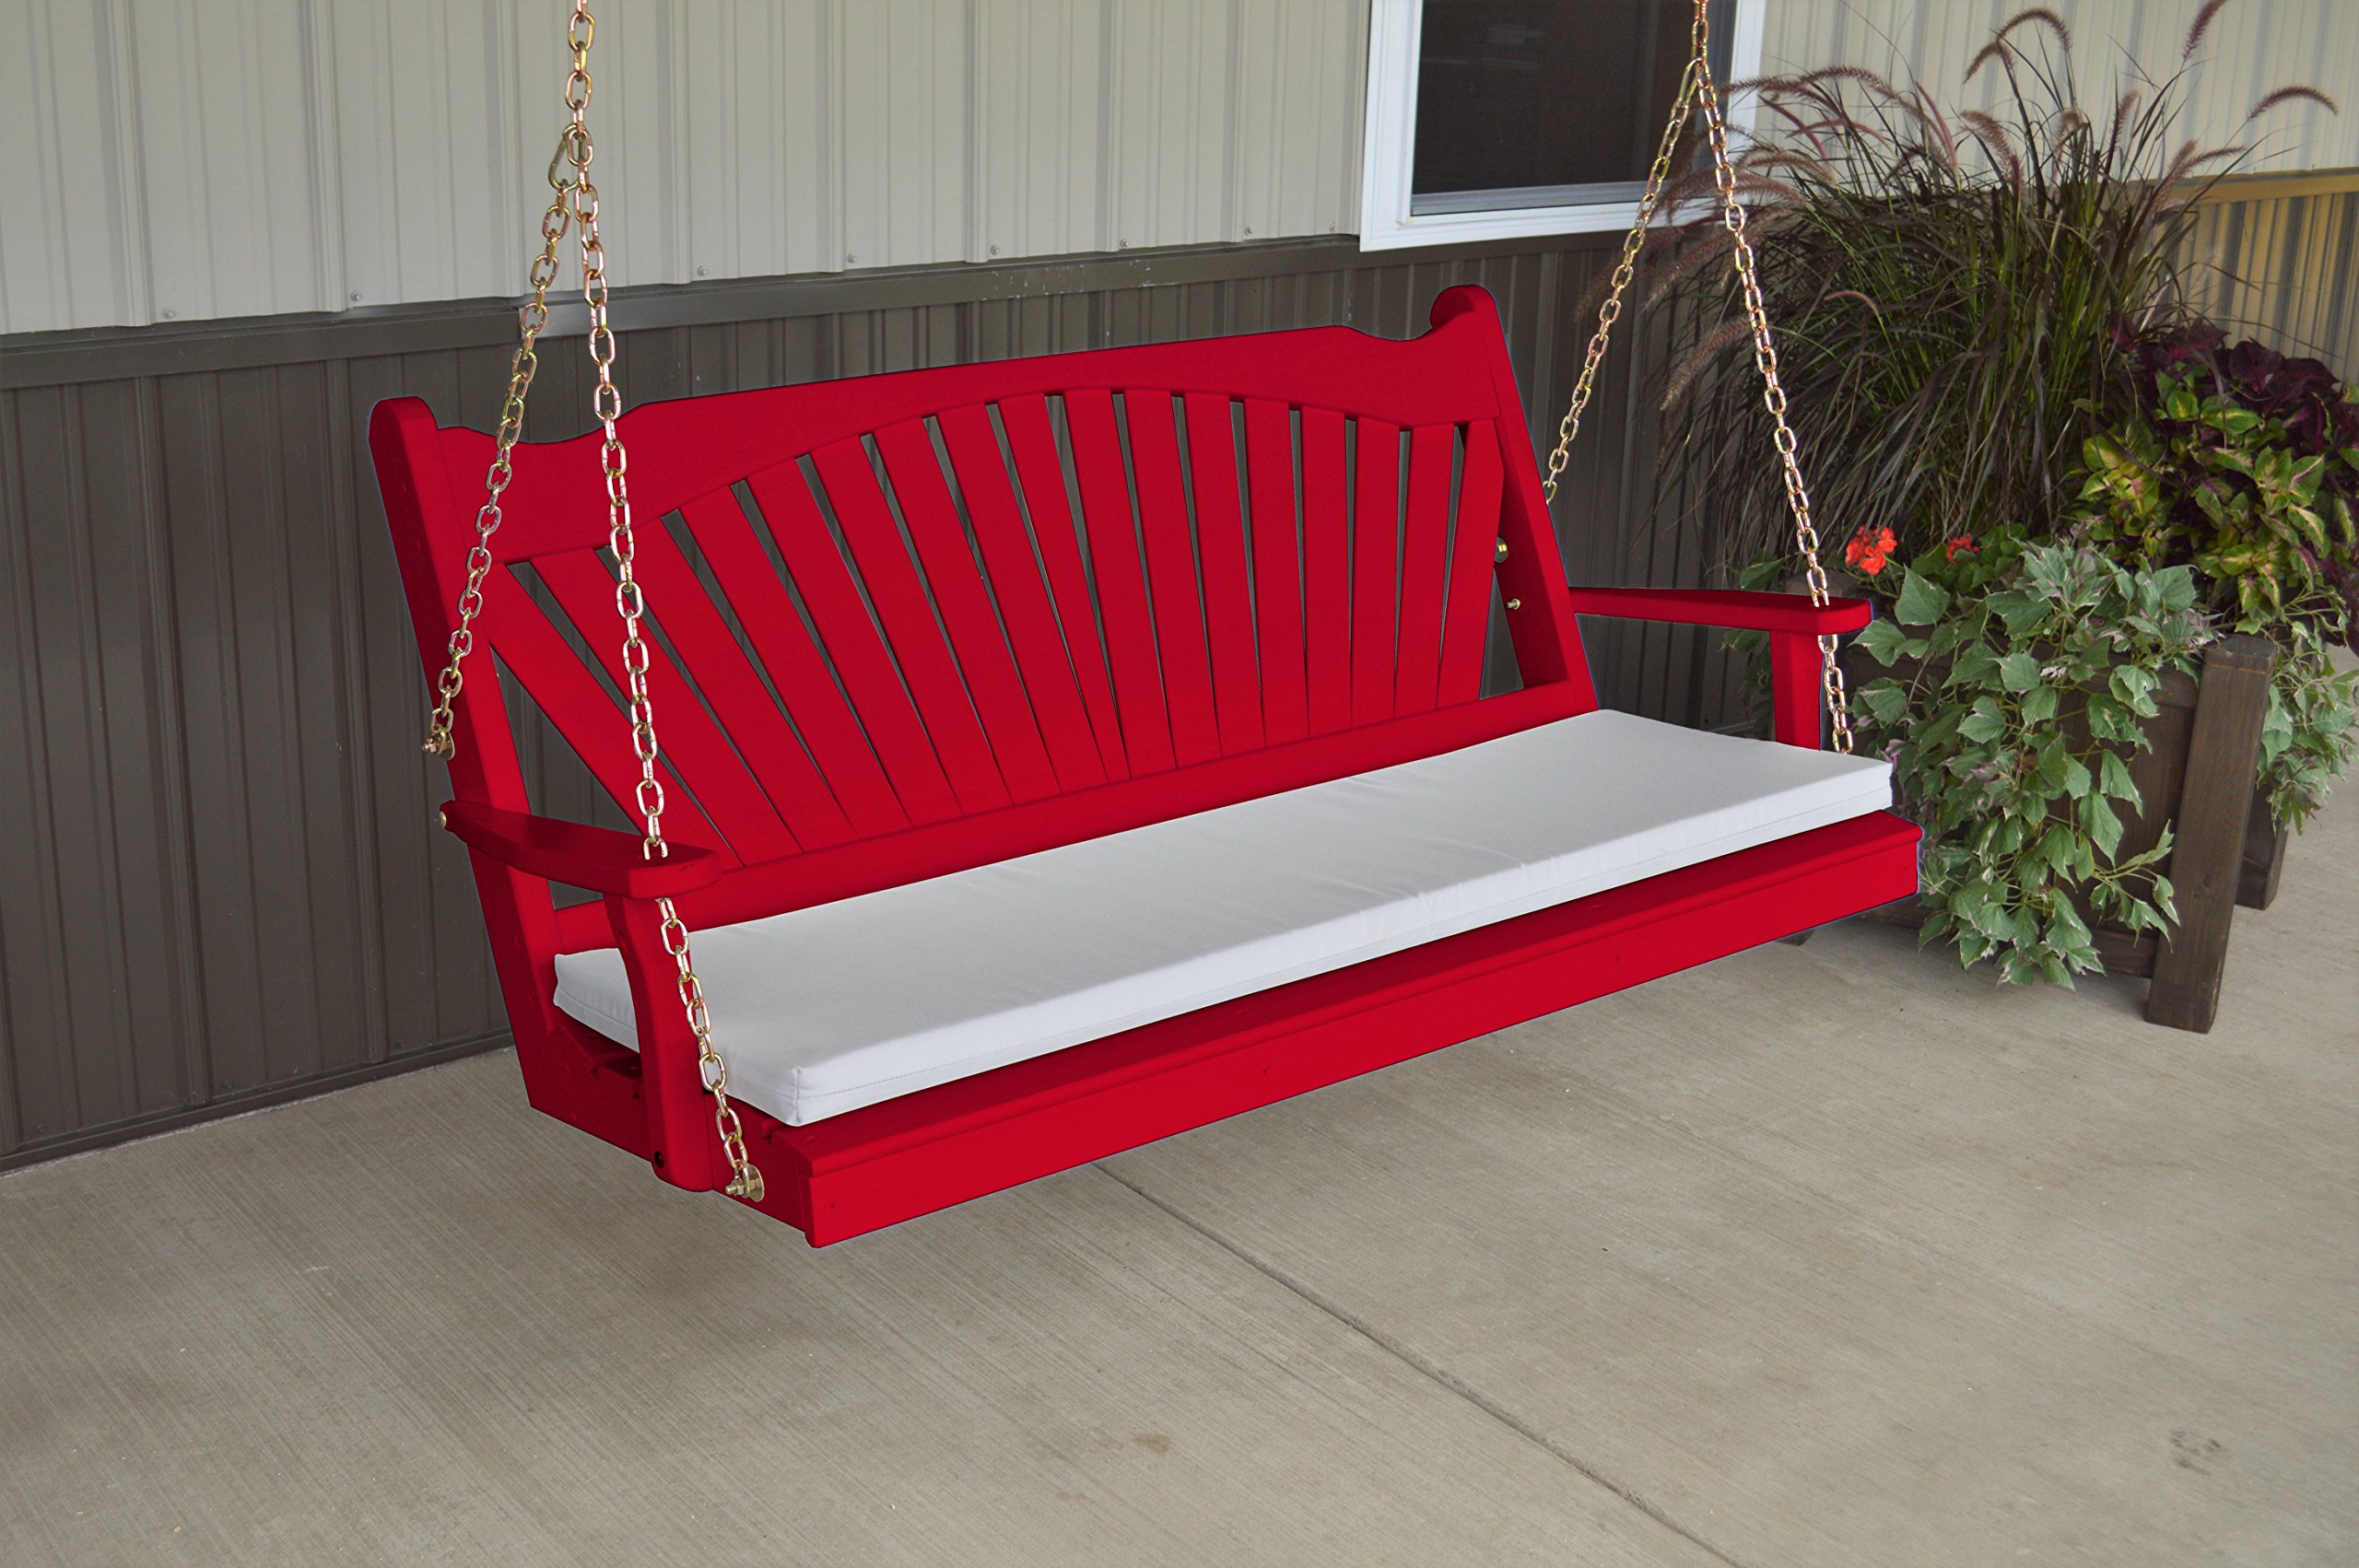 BEST PORCH SWING, 5u0027 Fanback Designer Patio U0026 Porch Swings For Those Who  Love